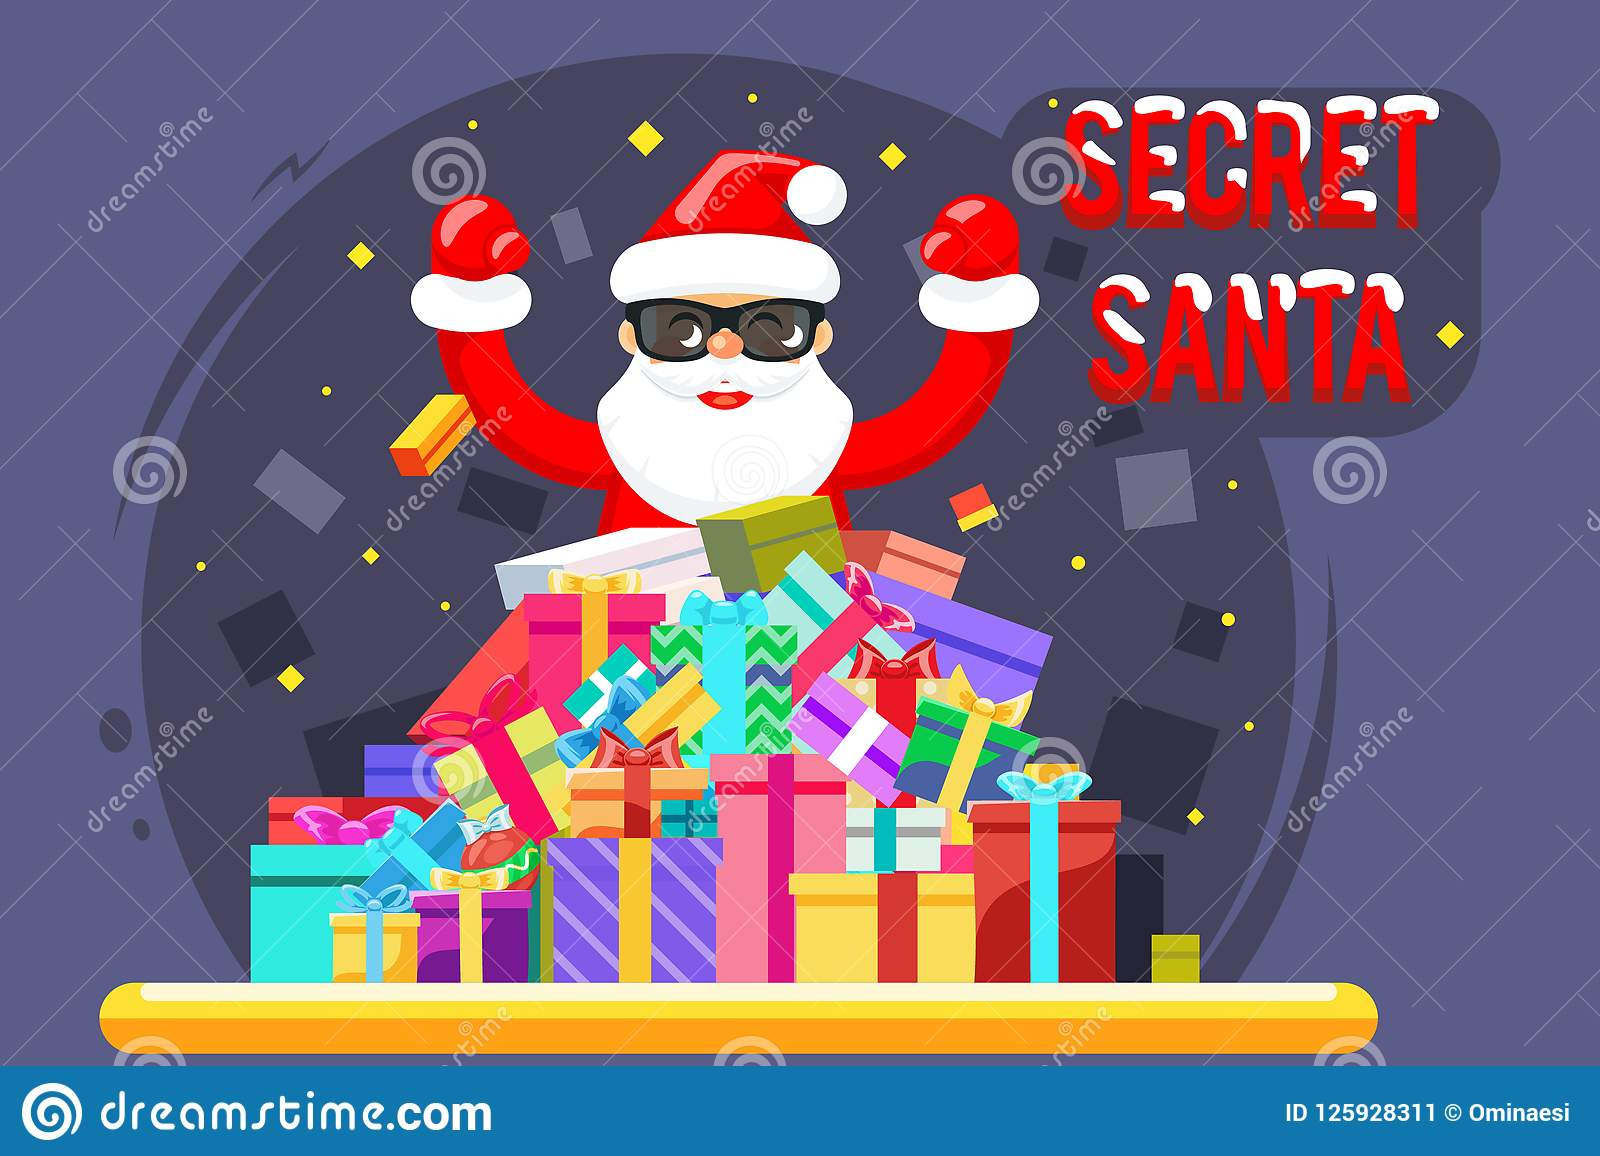 Happy Secret Santa Claus Shopping Pile Goods Christmas Gifts Boxes ...